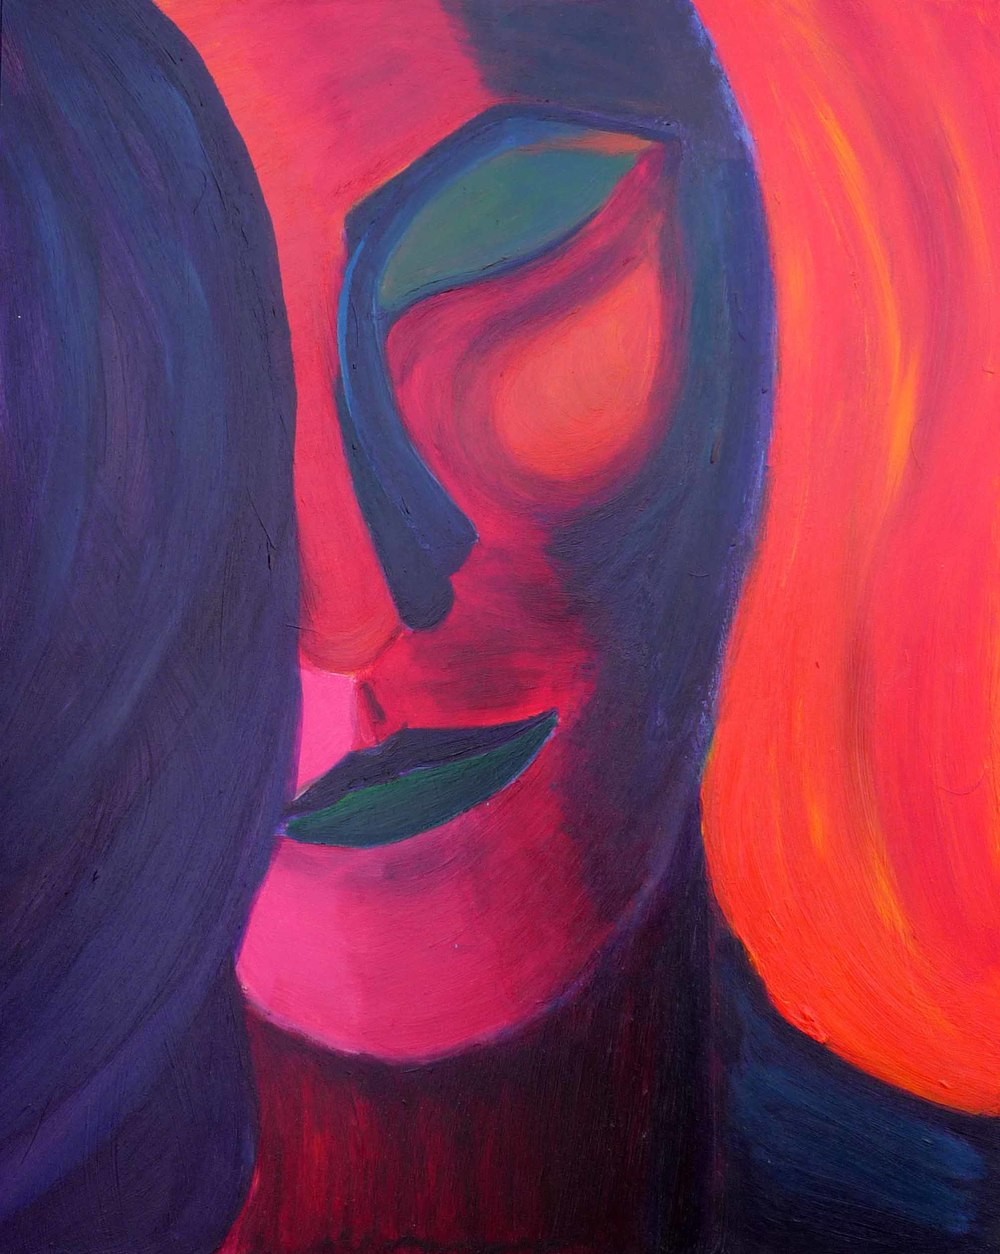 Angel, 2006, Acrylic, 16 x 20 in